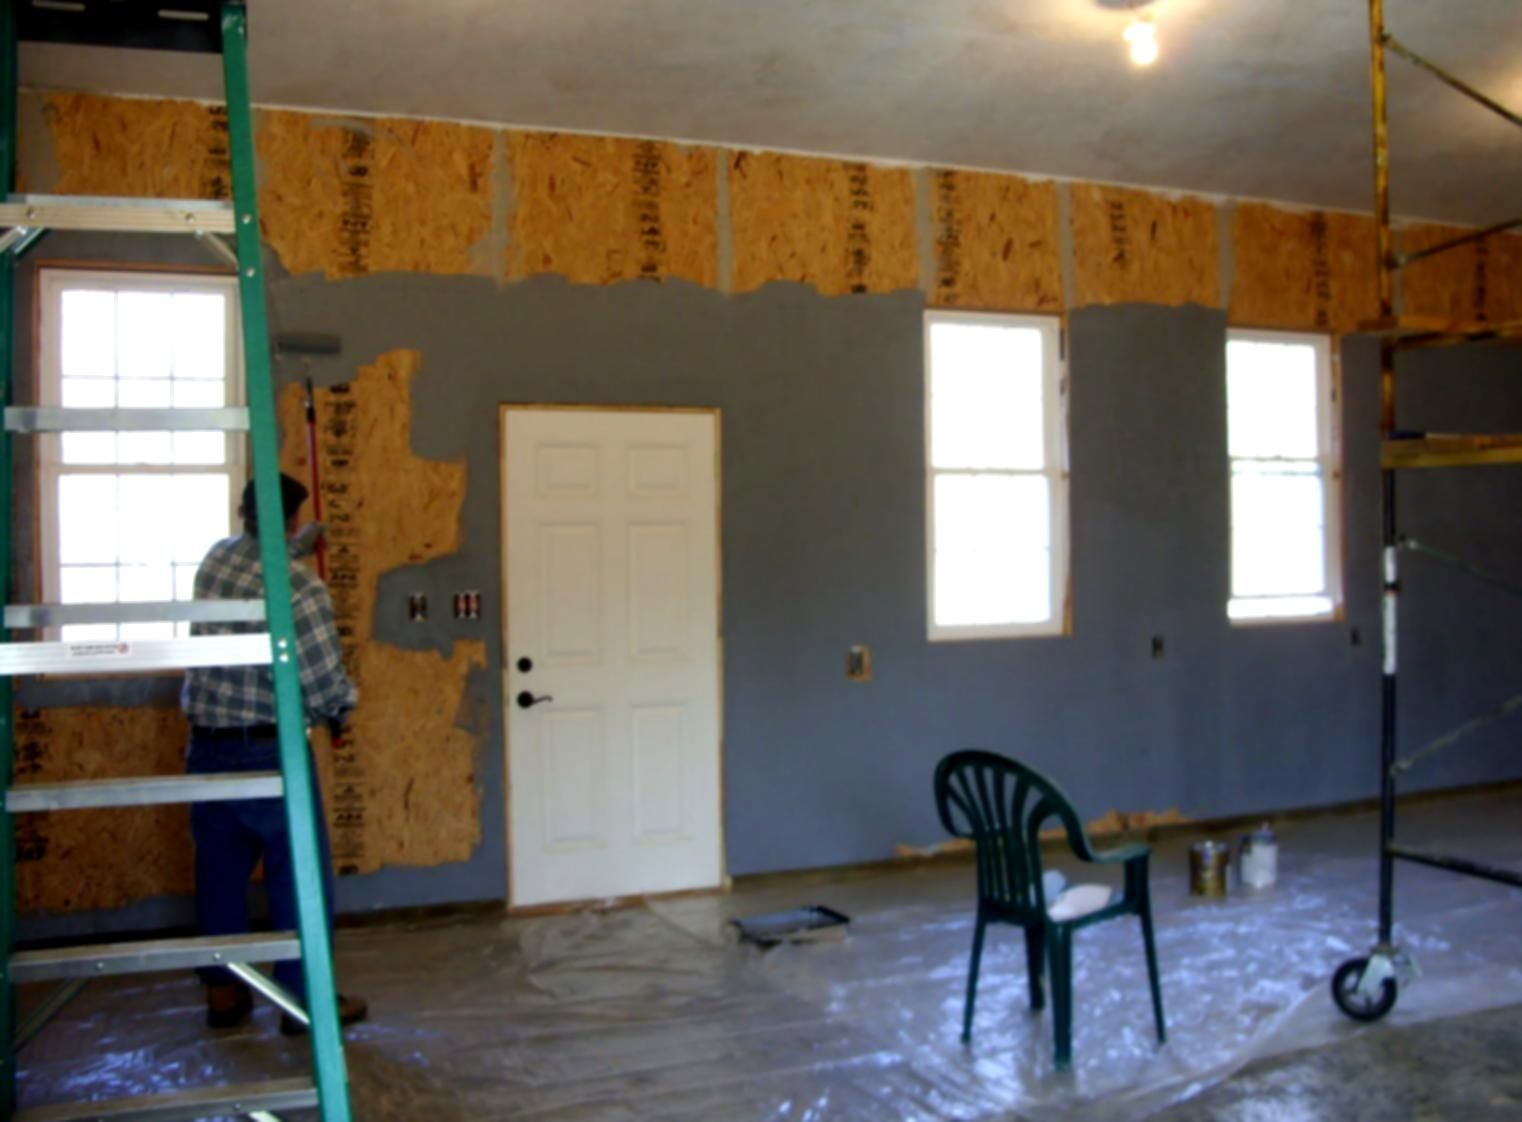 Pin By Mike Trover On New Building Painted Osb Osb Wooden Wall Design